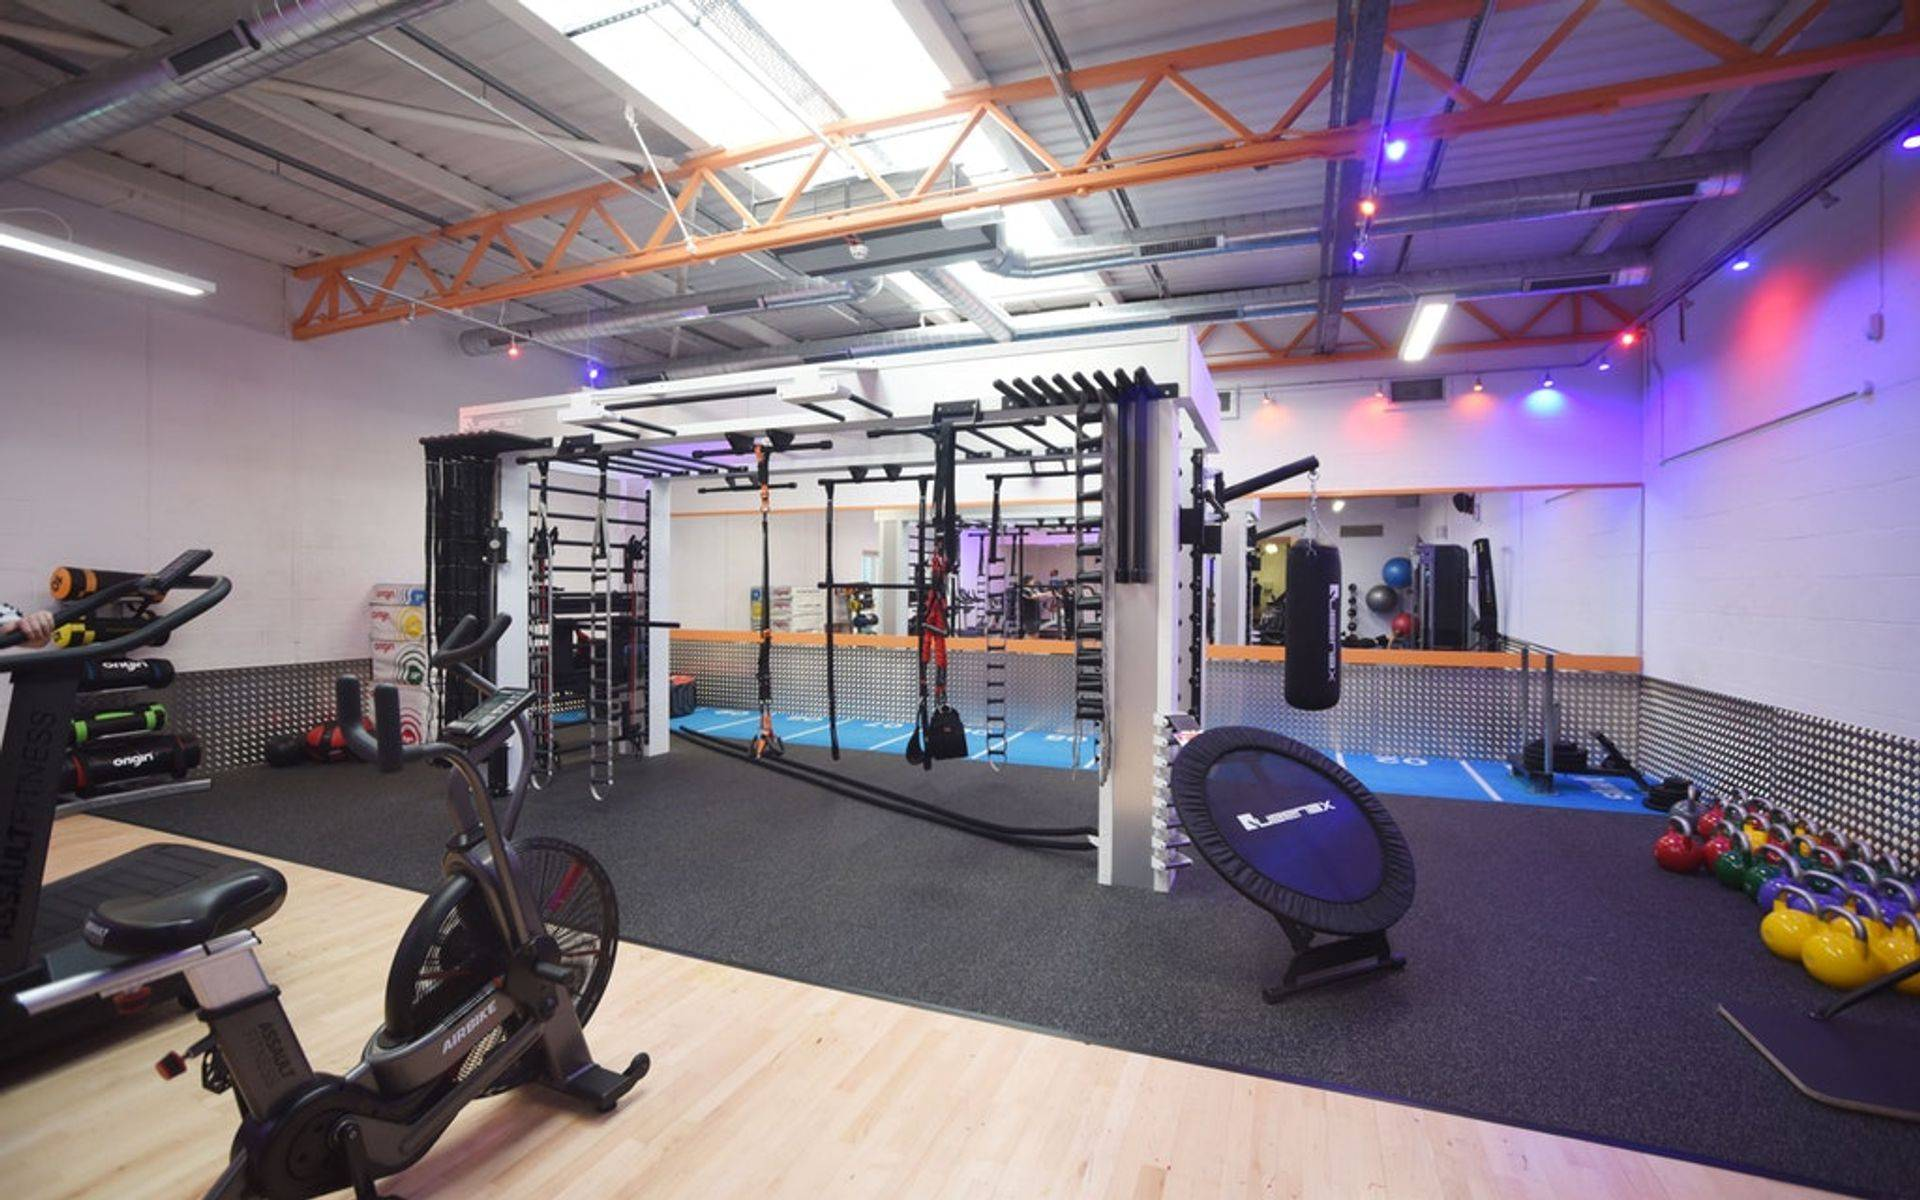 work out in a well equiped gym or in the comfort of your own home